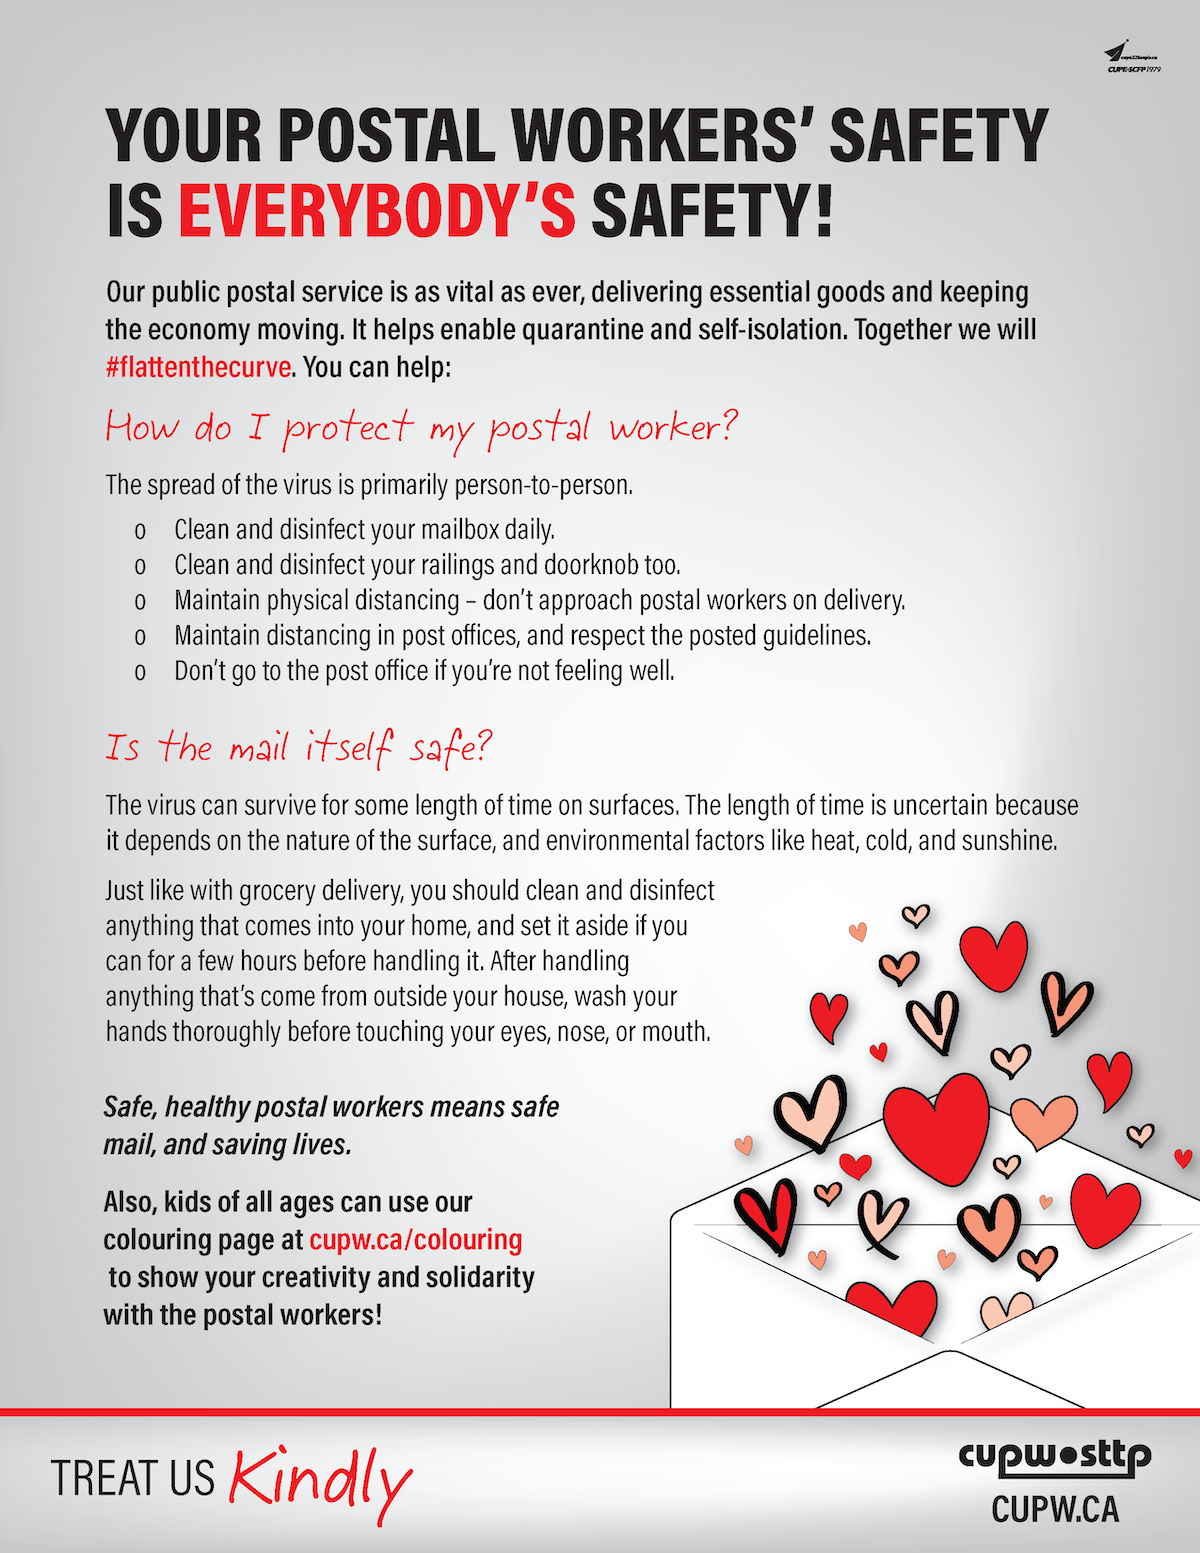 Image: Your Postal Workers' Safety Is Everybody's Safety!